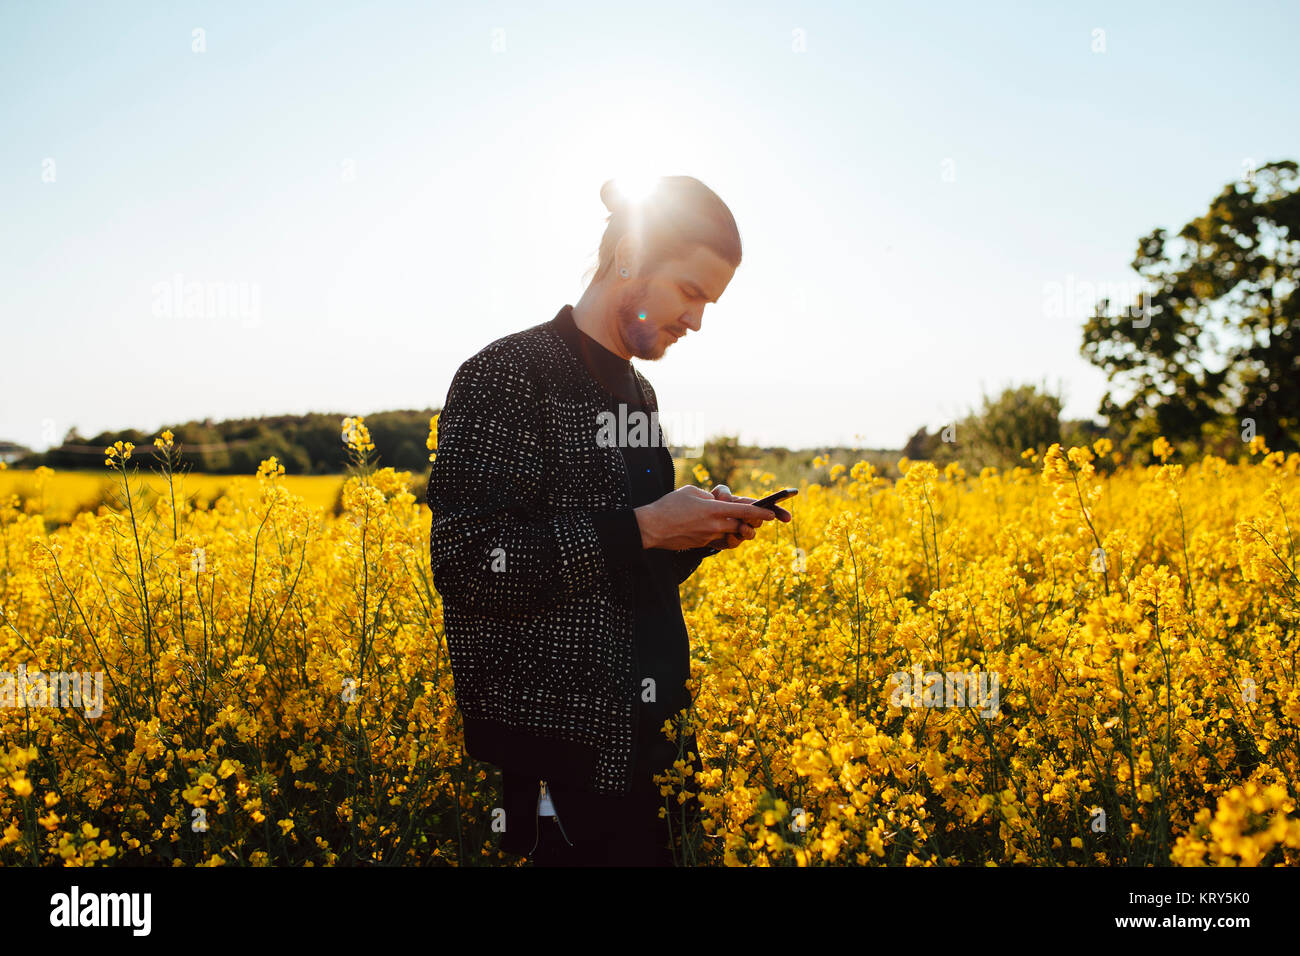 A young man outdoors looking at his cell phone - Stock Image